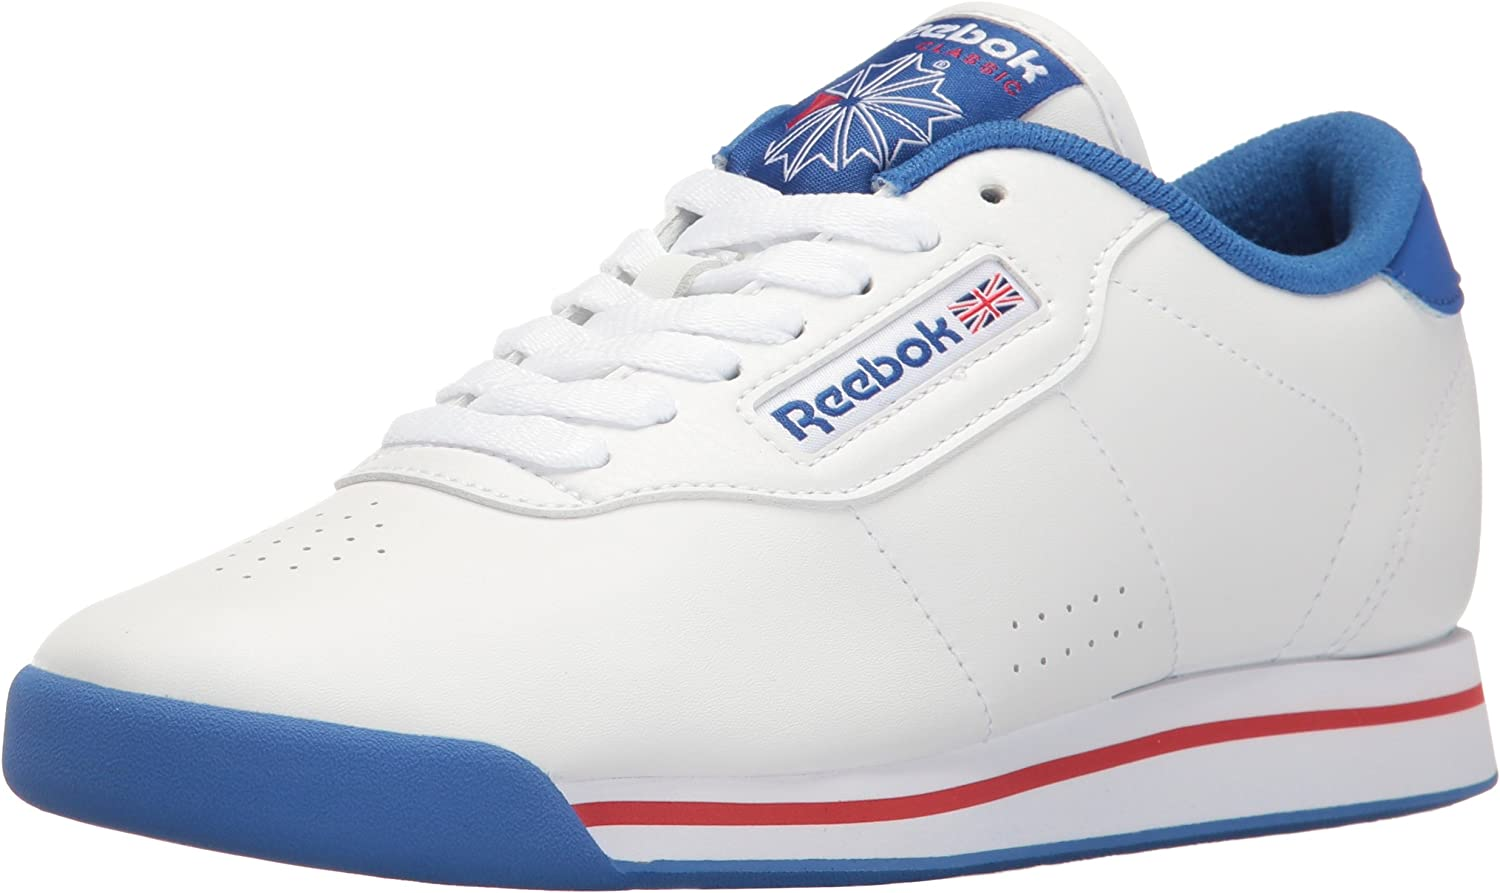 Retro Sneakers, Vintage Tennis Shoes Reebok Womens Princess Fitness Lace-Up Fashion Sneaker $36.00 AT vintagedancer.com